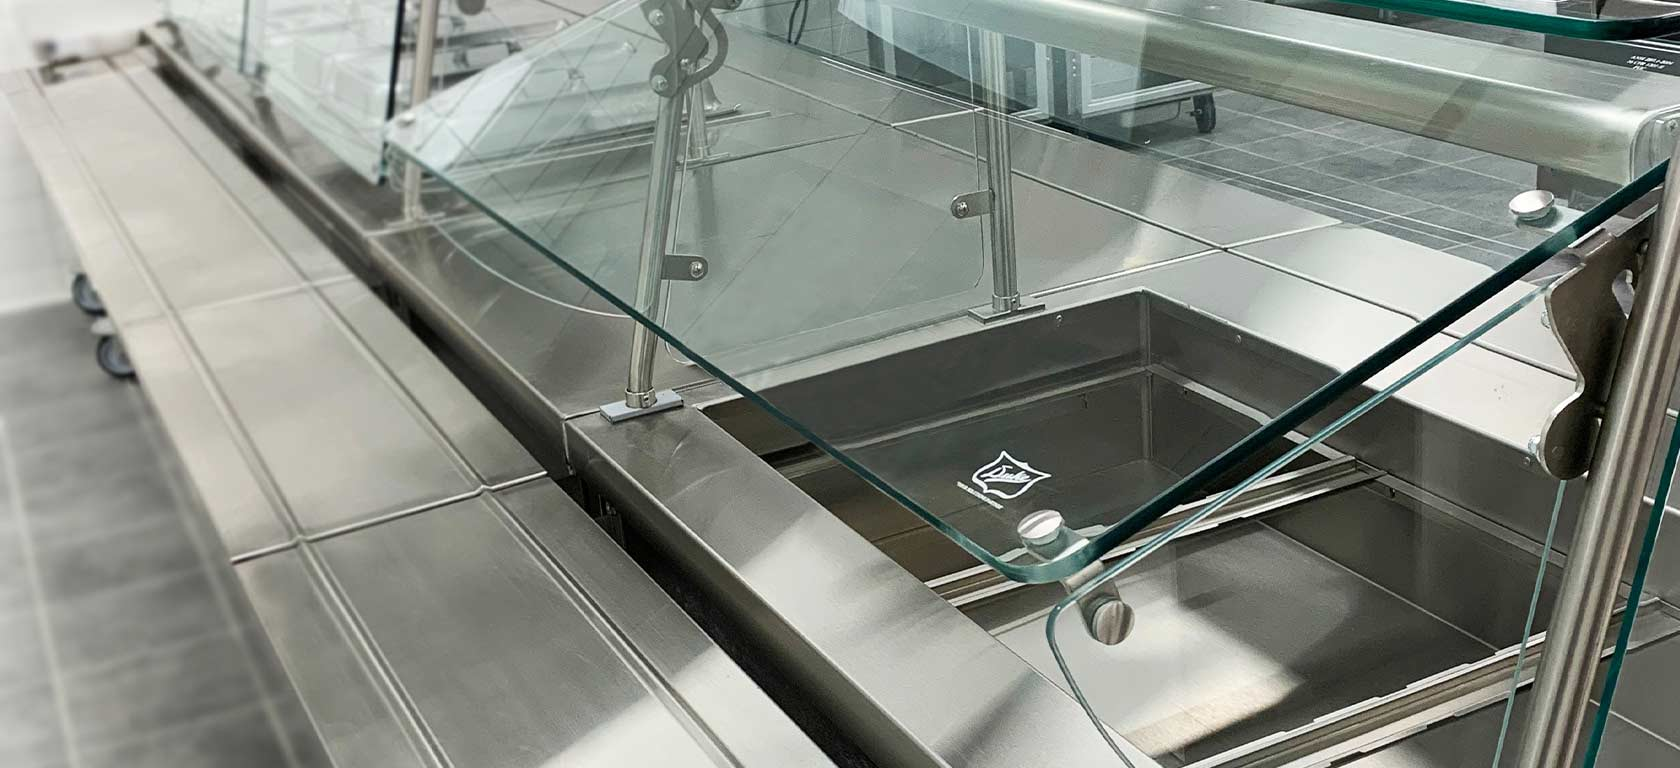 Vertical shot of glass cover on a stainless steel food display for a cafeteria.